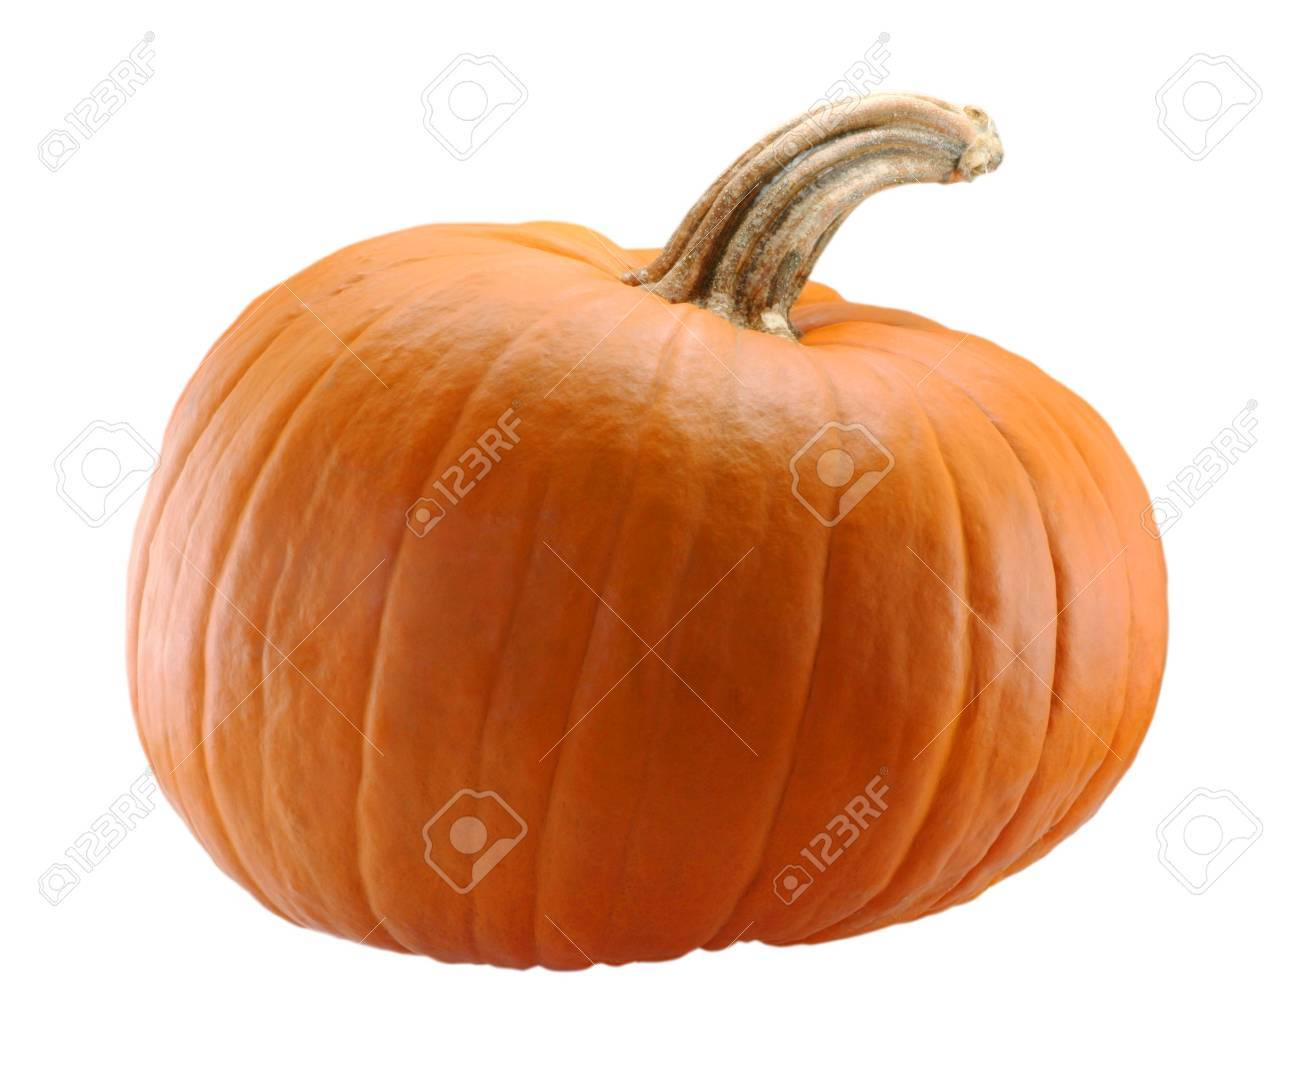 Pumpkin Isolated On White Background With Brown Stem Stock Photo Picture And Royalty Free Image Image 1862468